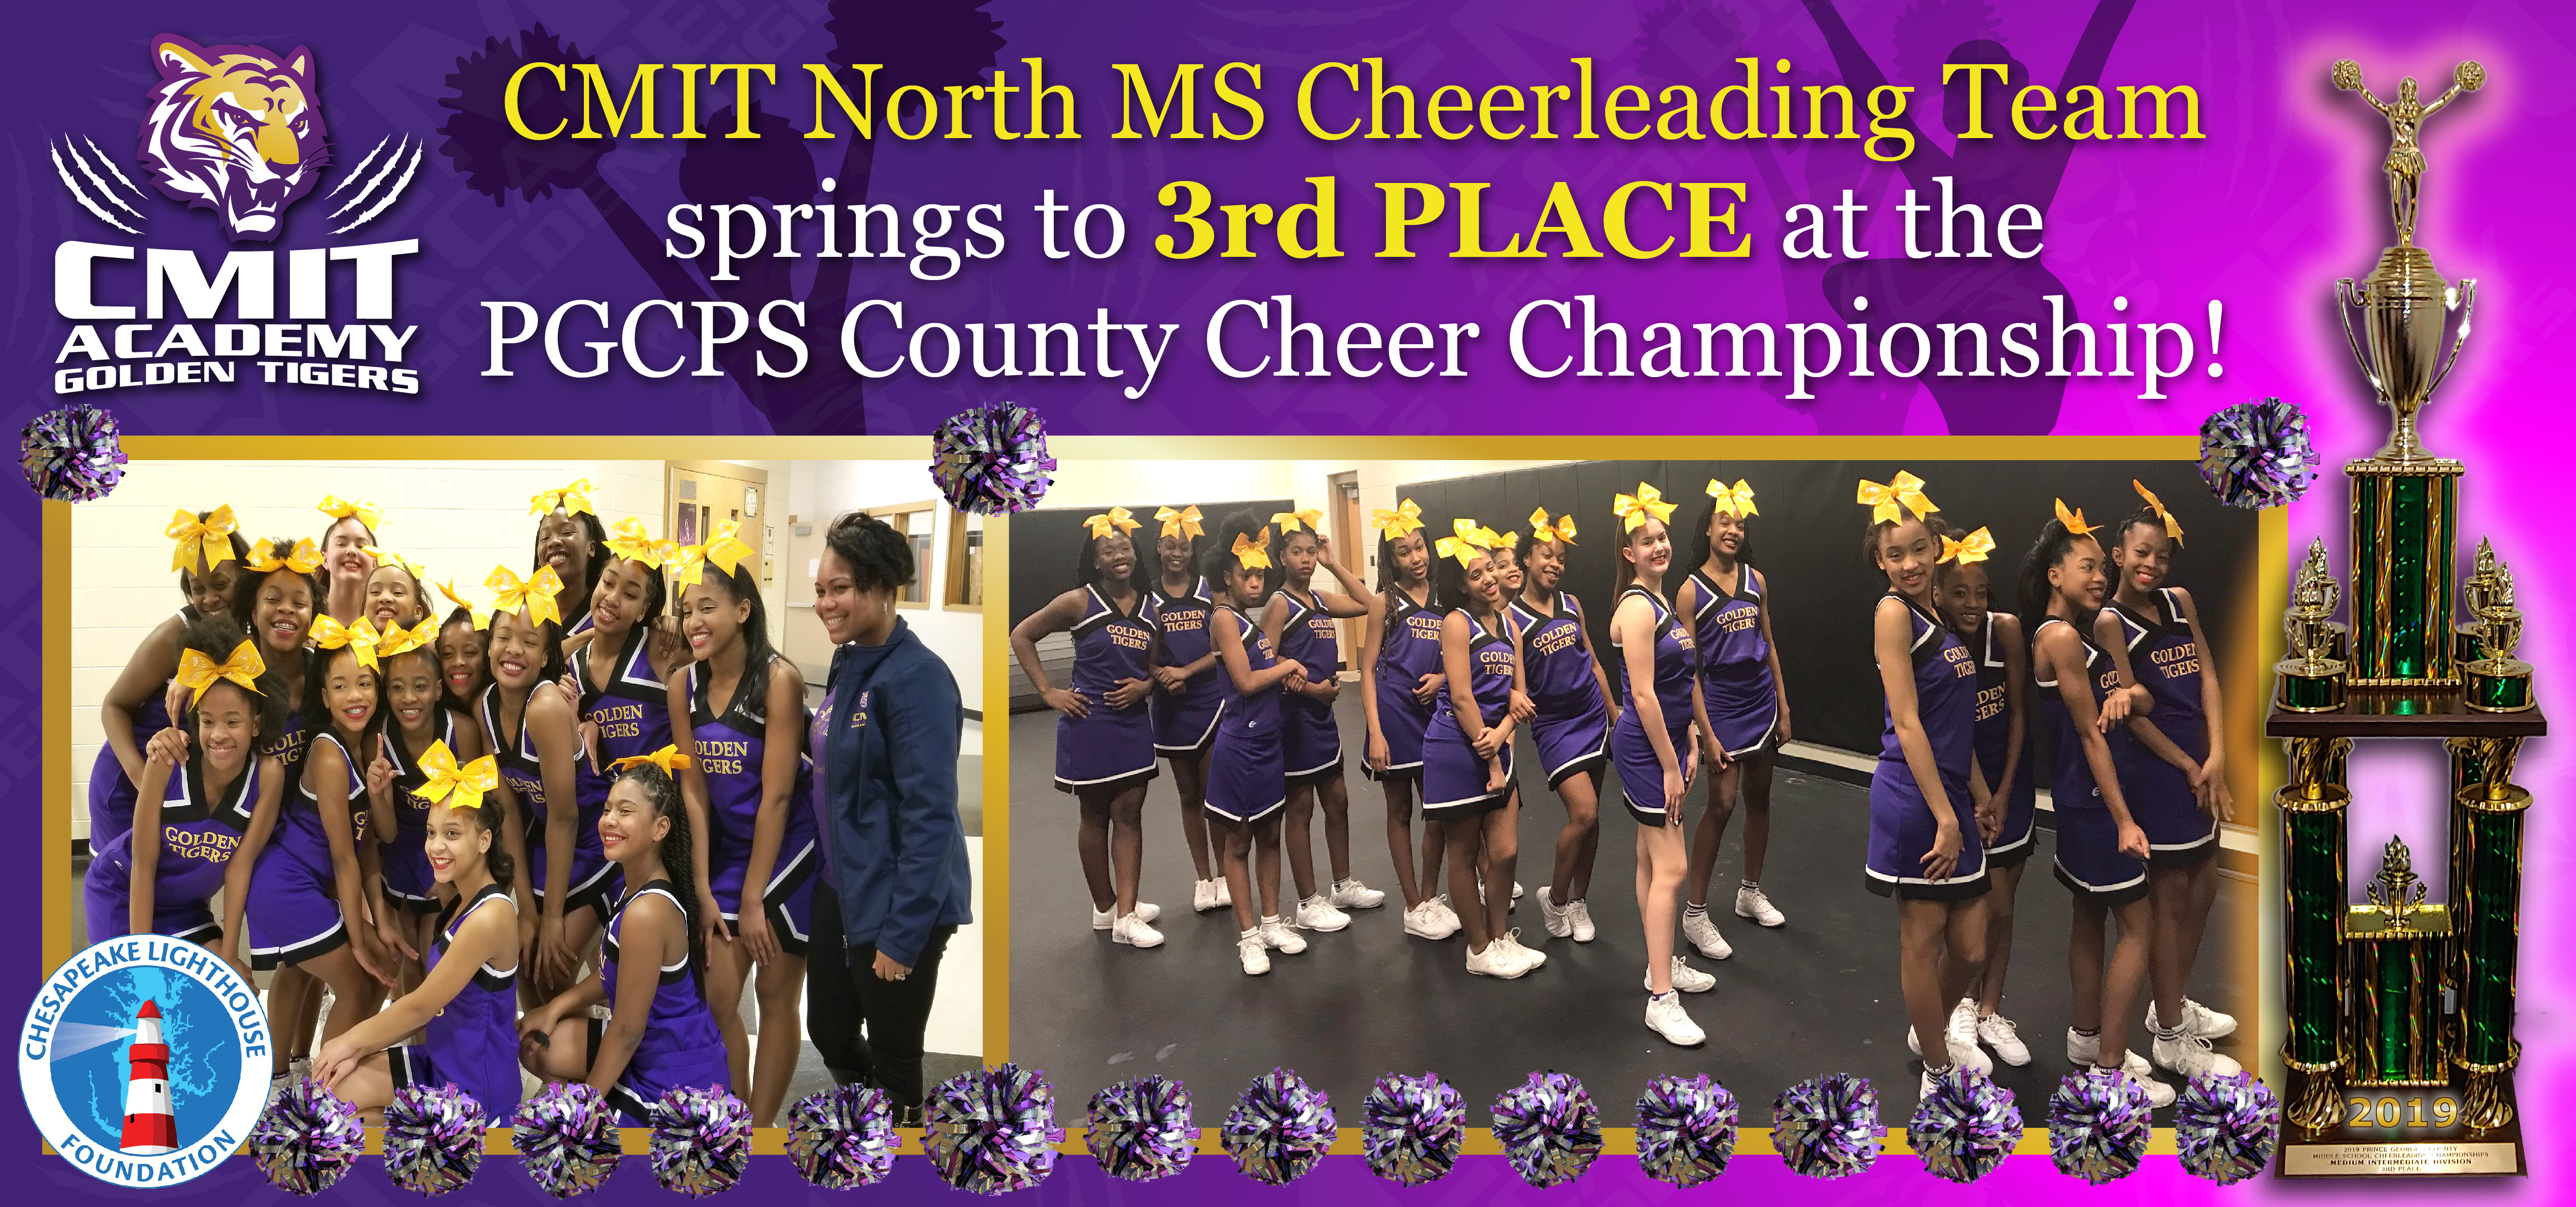 Cheerleading Team Earns 3rd Place at PGCPS County Cheer Championship